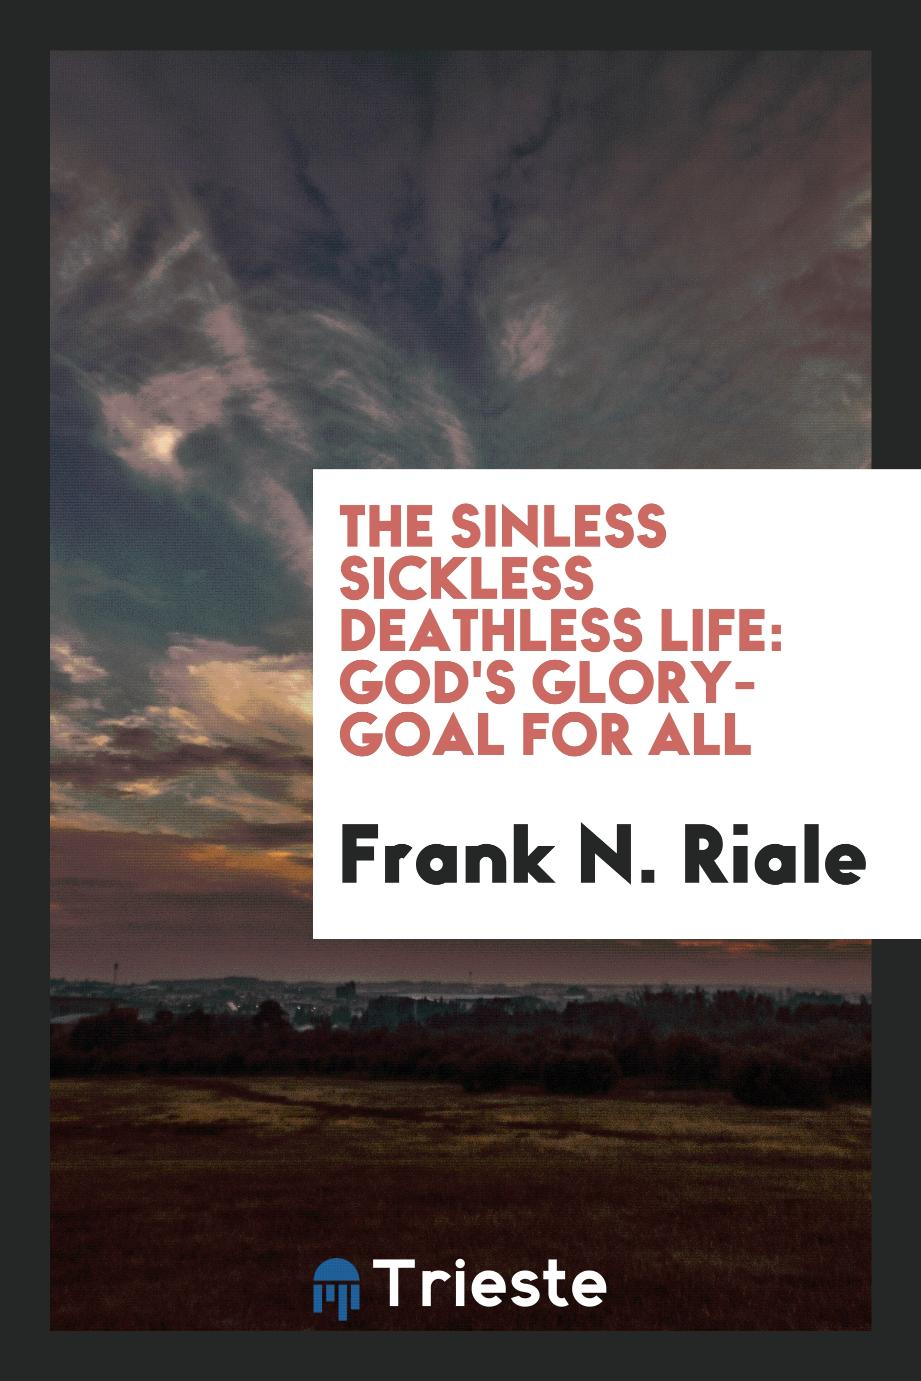 The sinless sickless deathless life: God's glory-goal for all